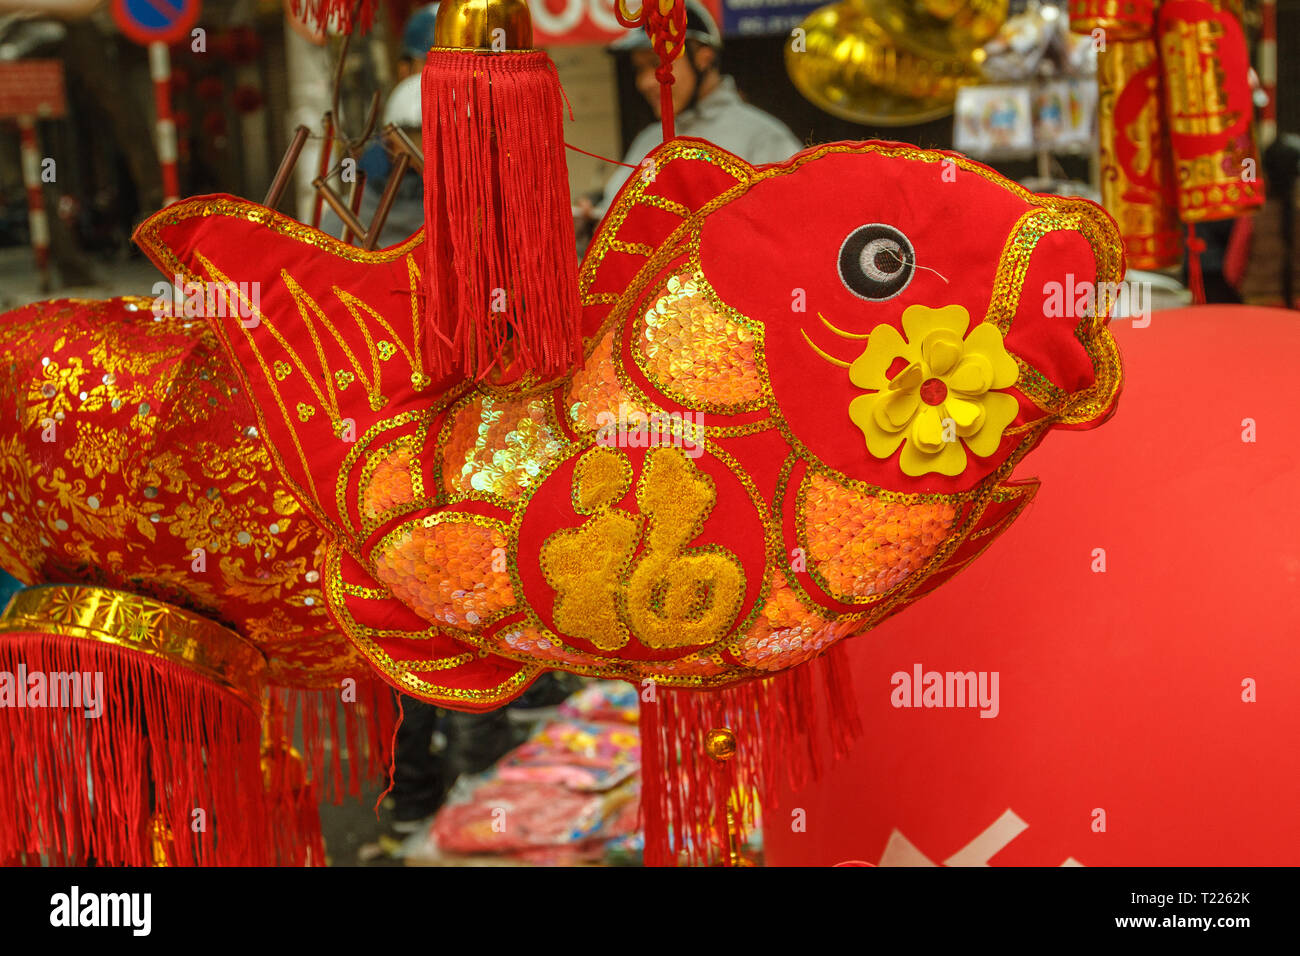 Red and gold carps on street market - decoration for celebrating Tet, Vietnamese new year in Hanoi, Vietnam. - Stock Image